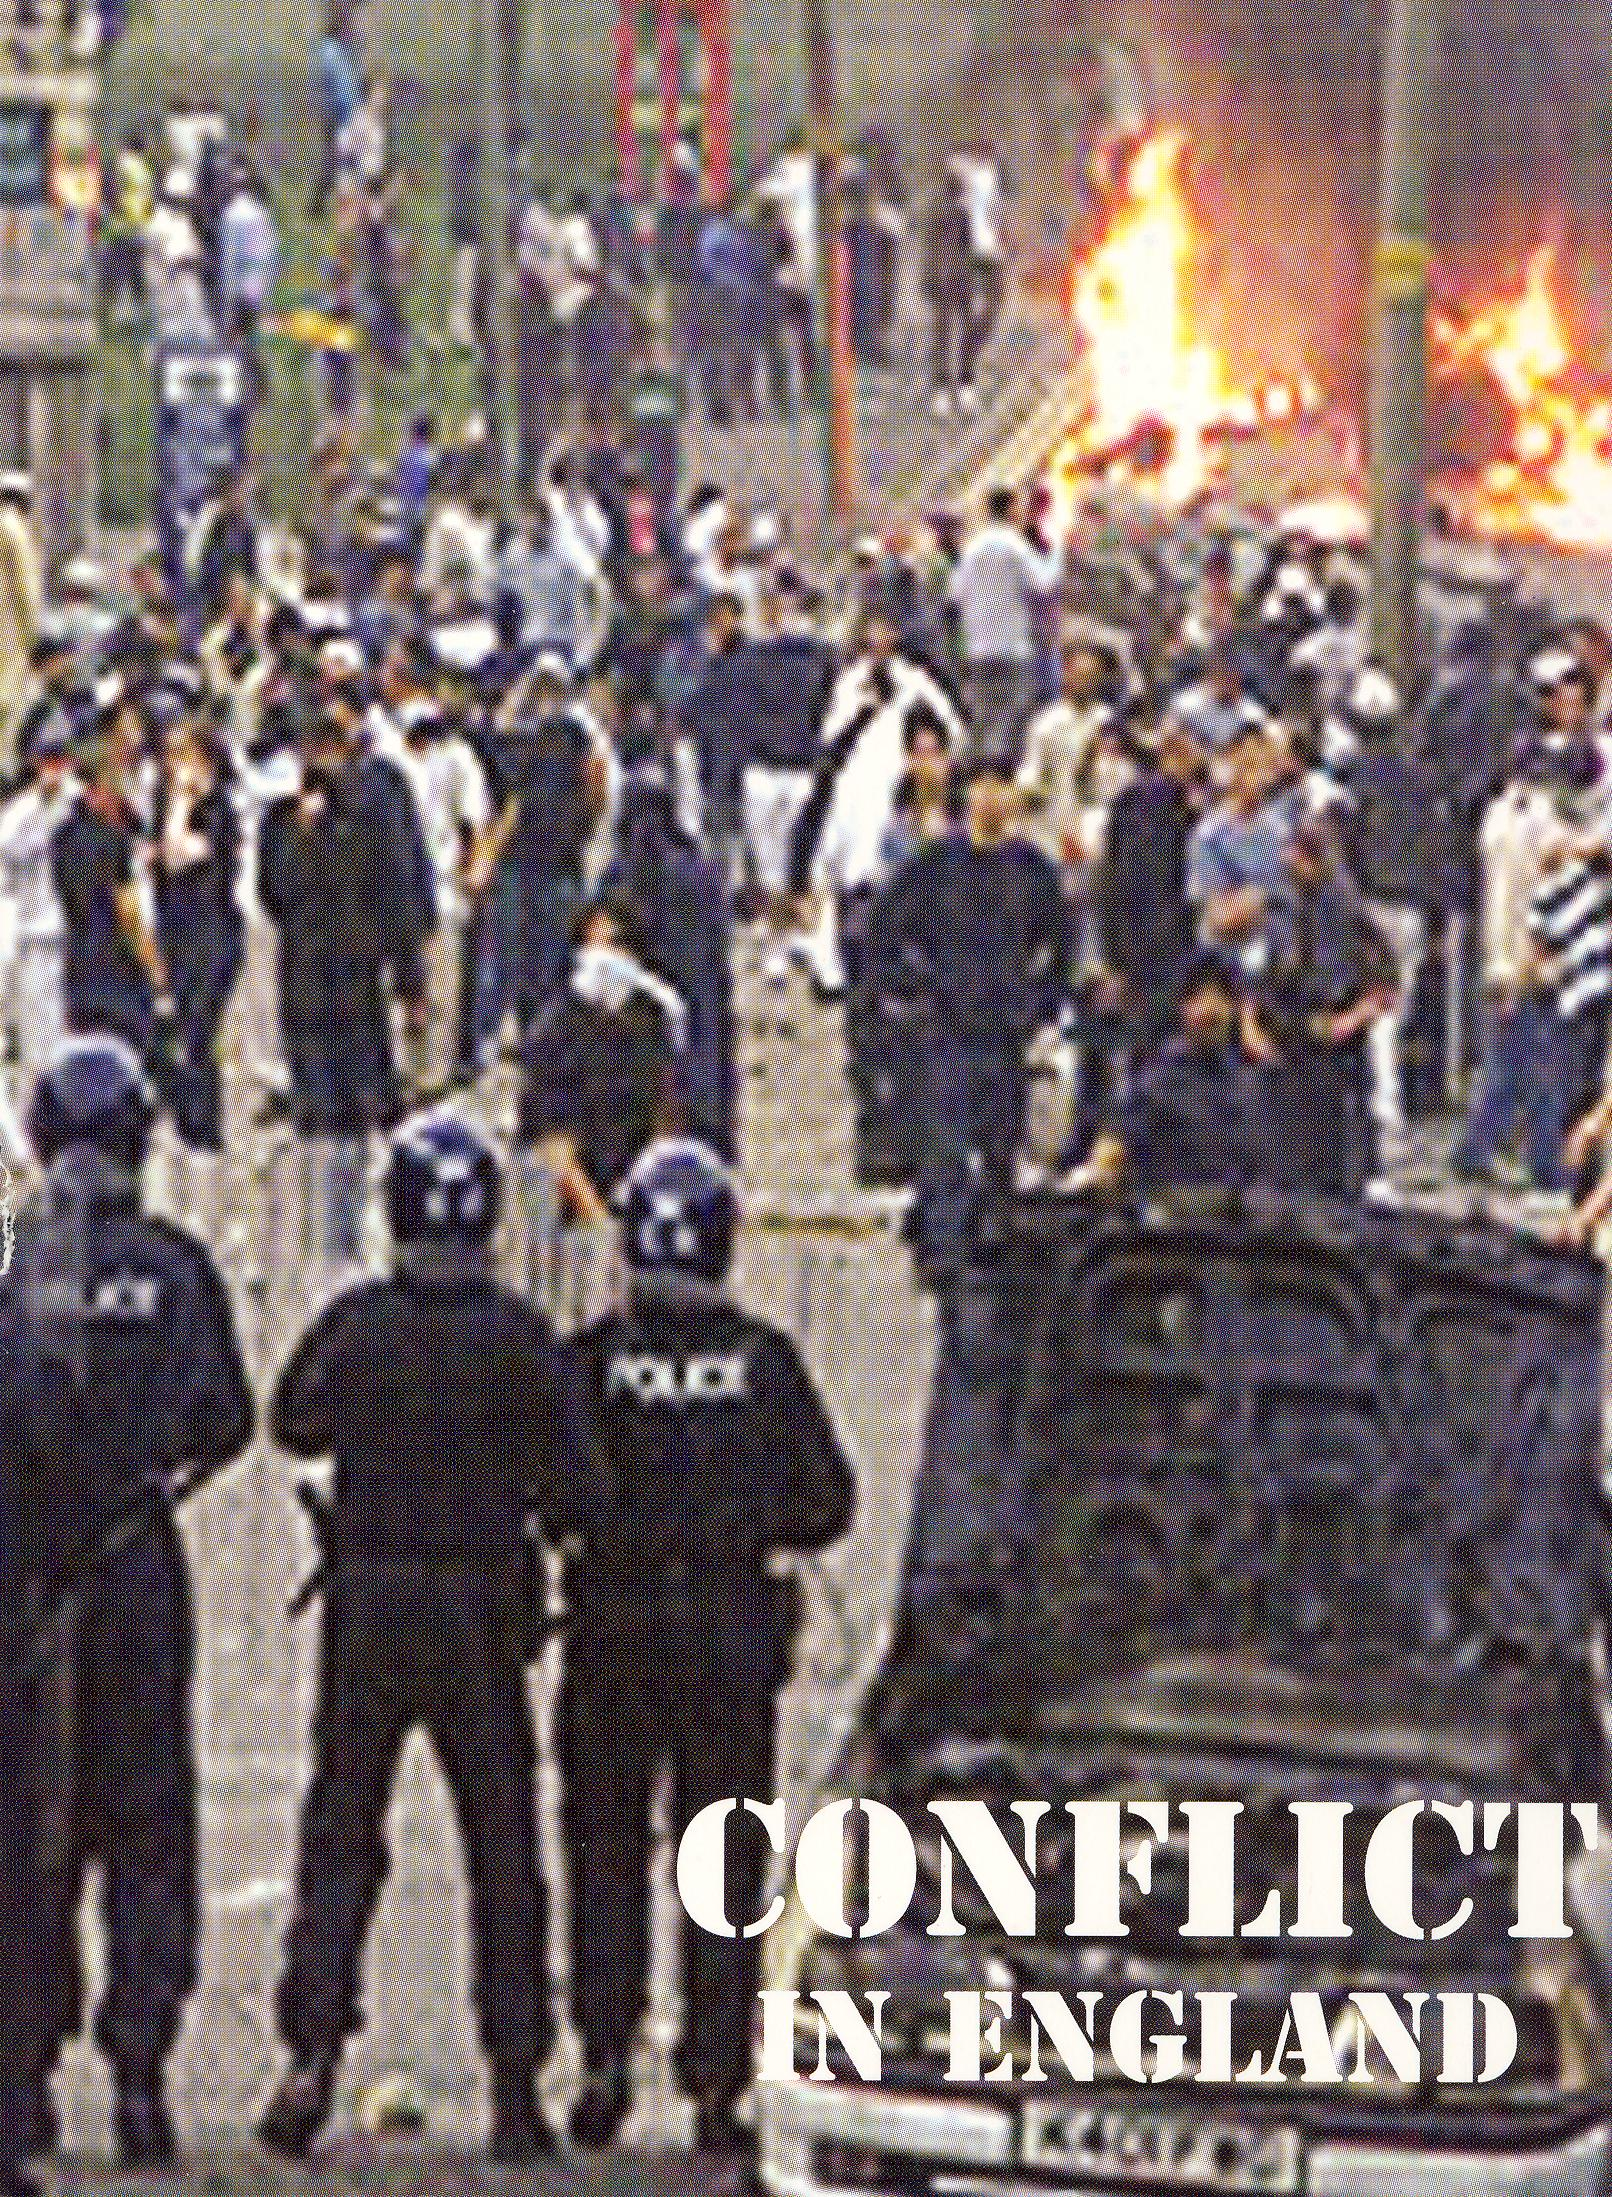 Conflict: Live in England